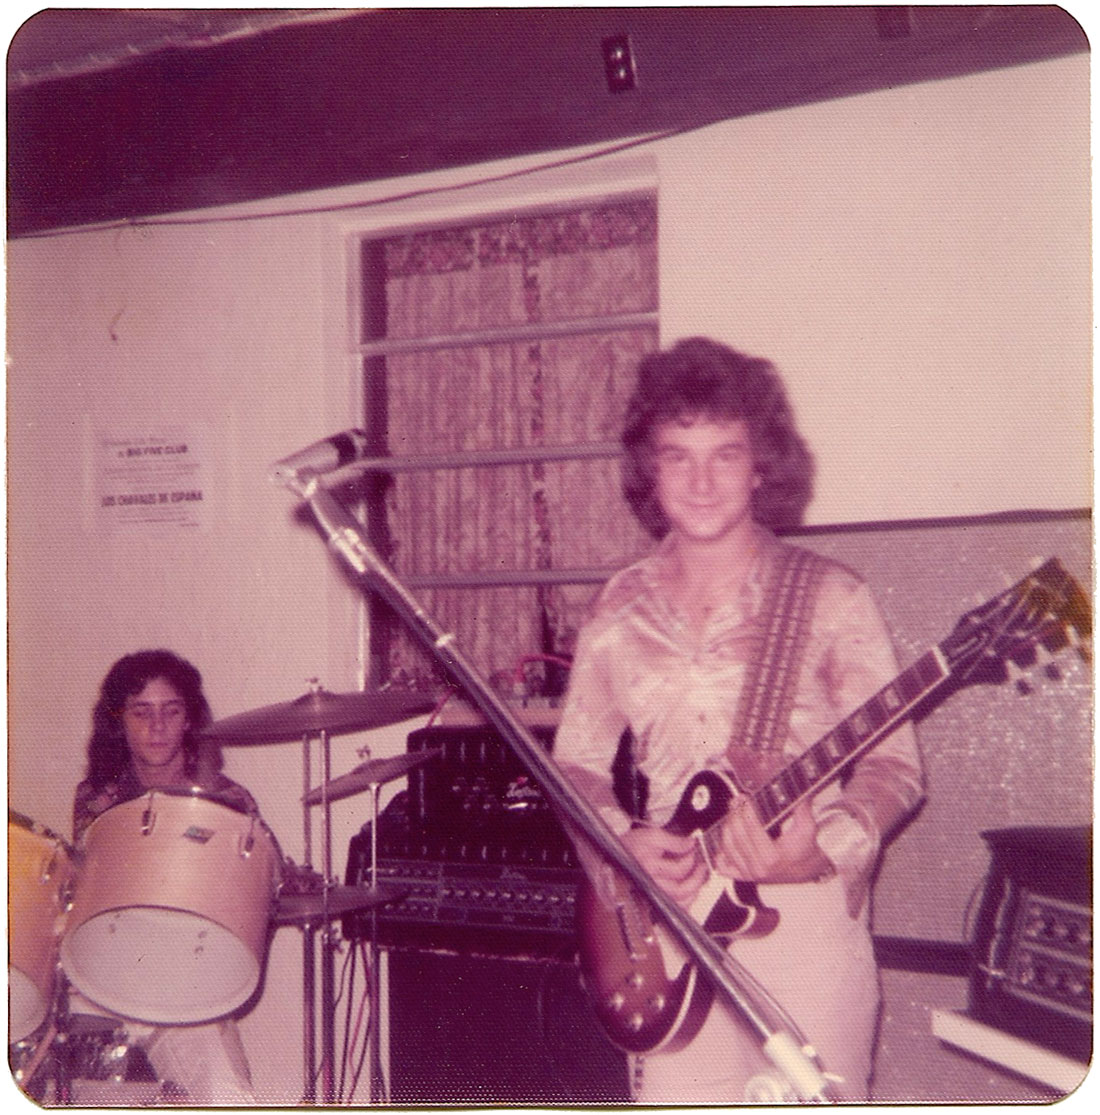 Carlos Segura Frank Miret at The Big-5 Club on March 30, 1975